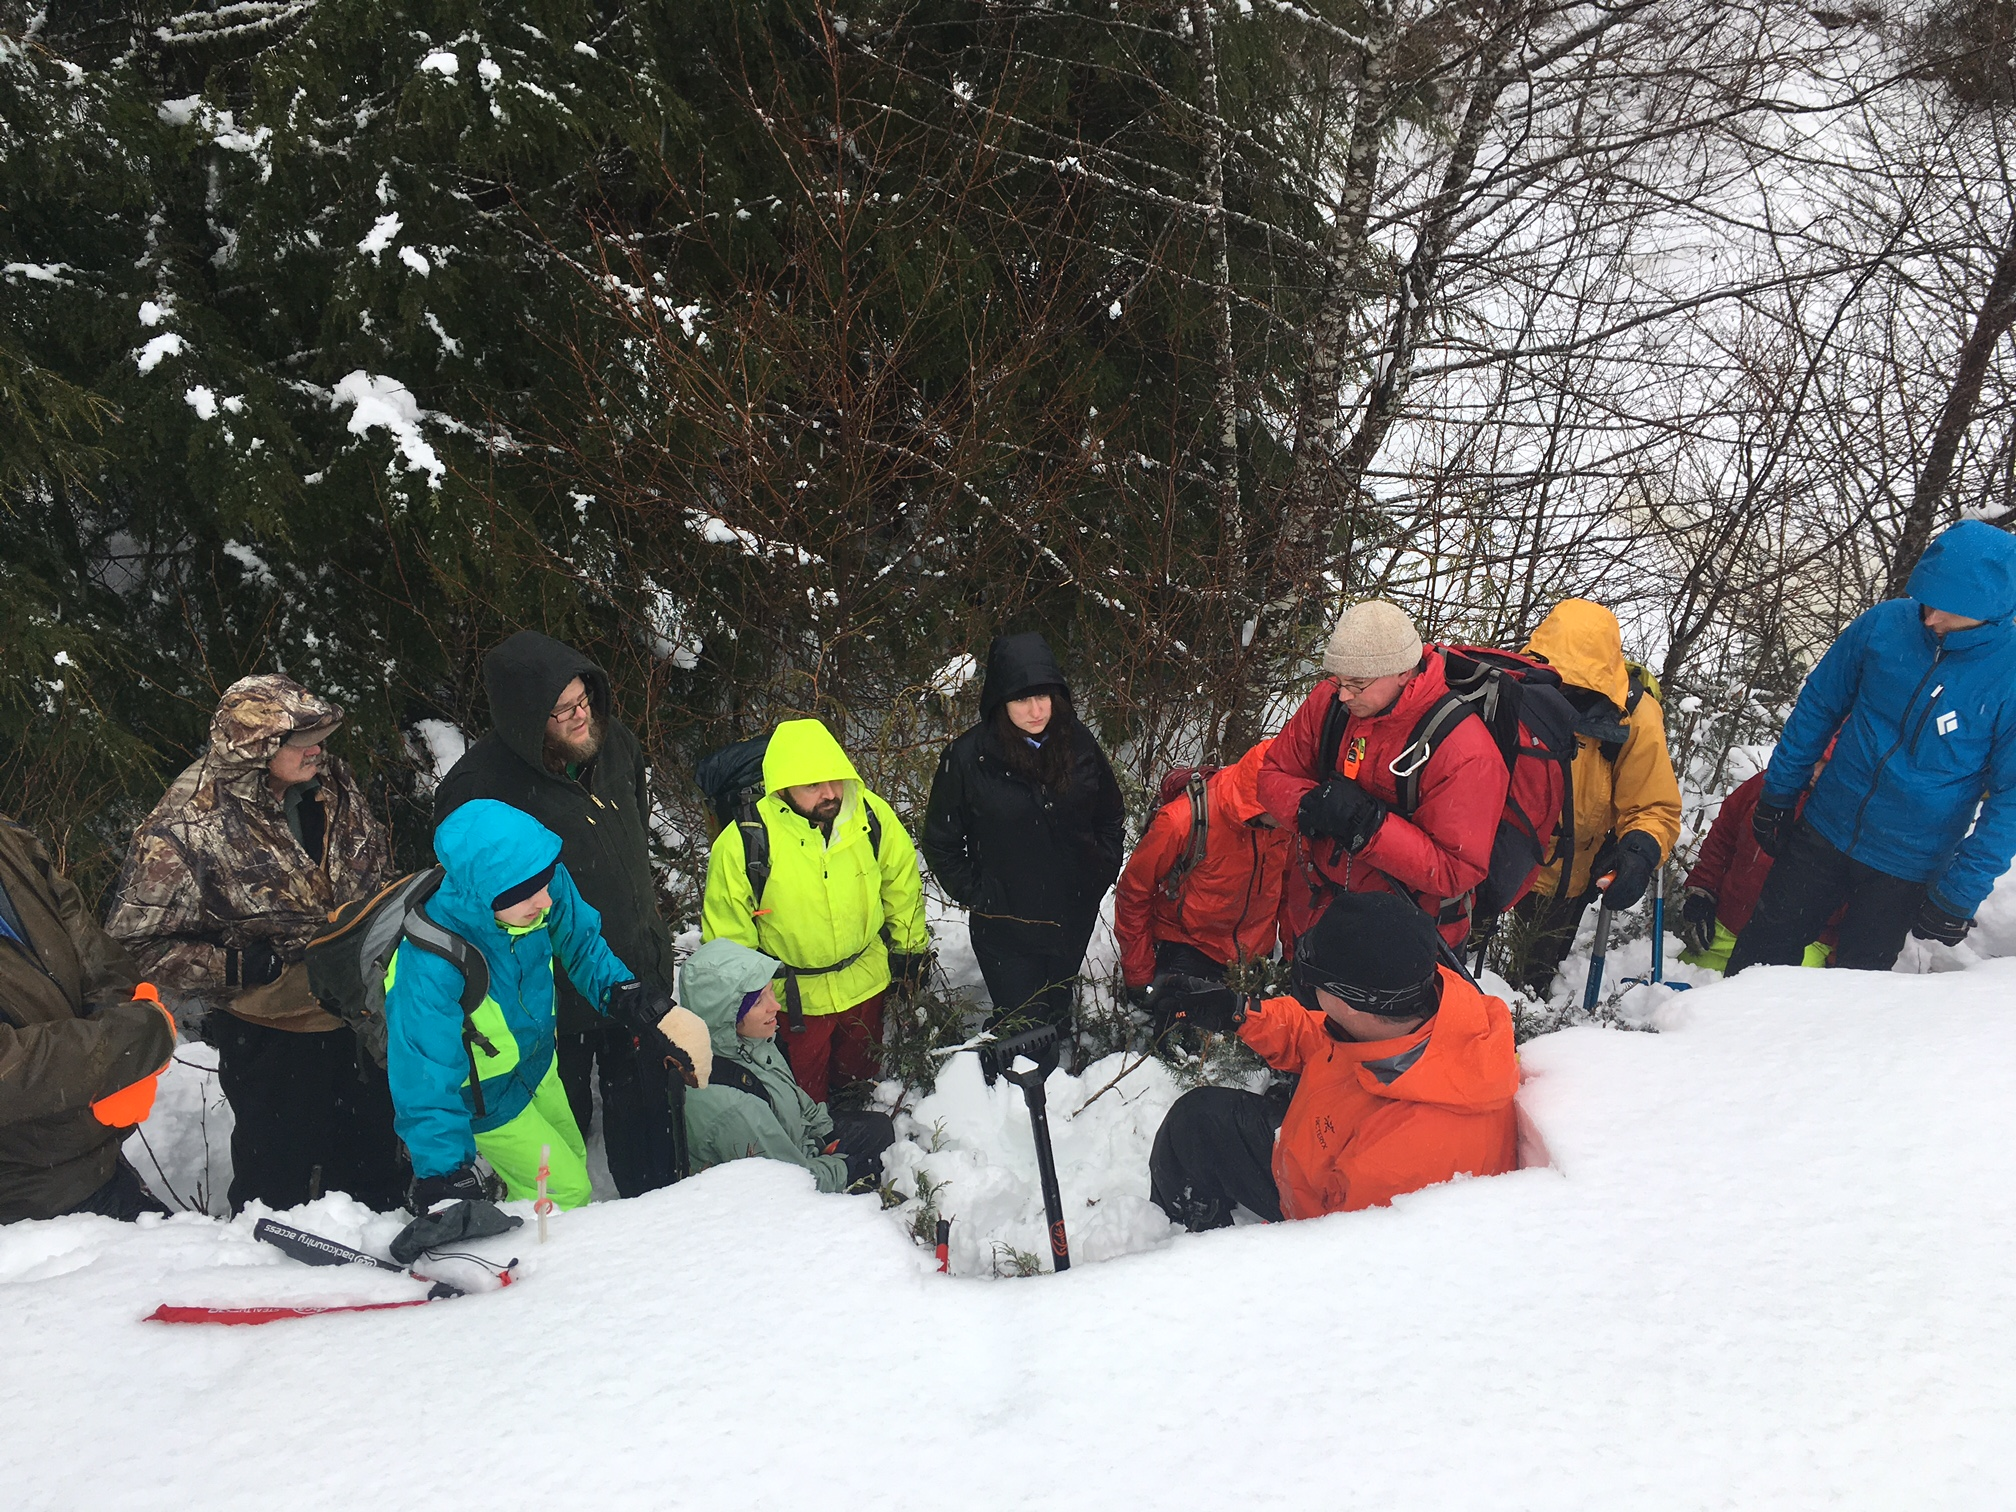 A group of students practice looking at the snow pack. Photo by T. Mattice.